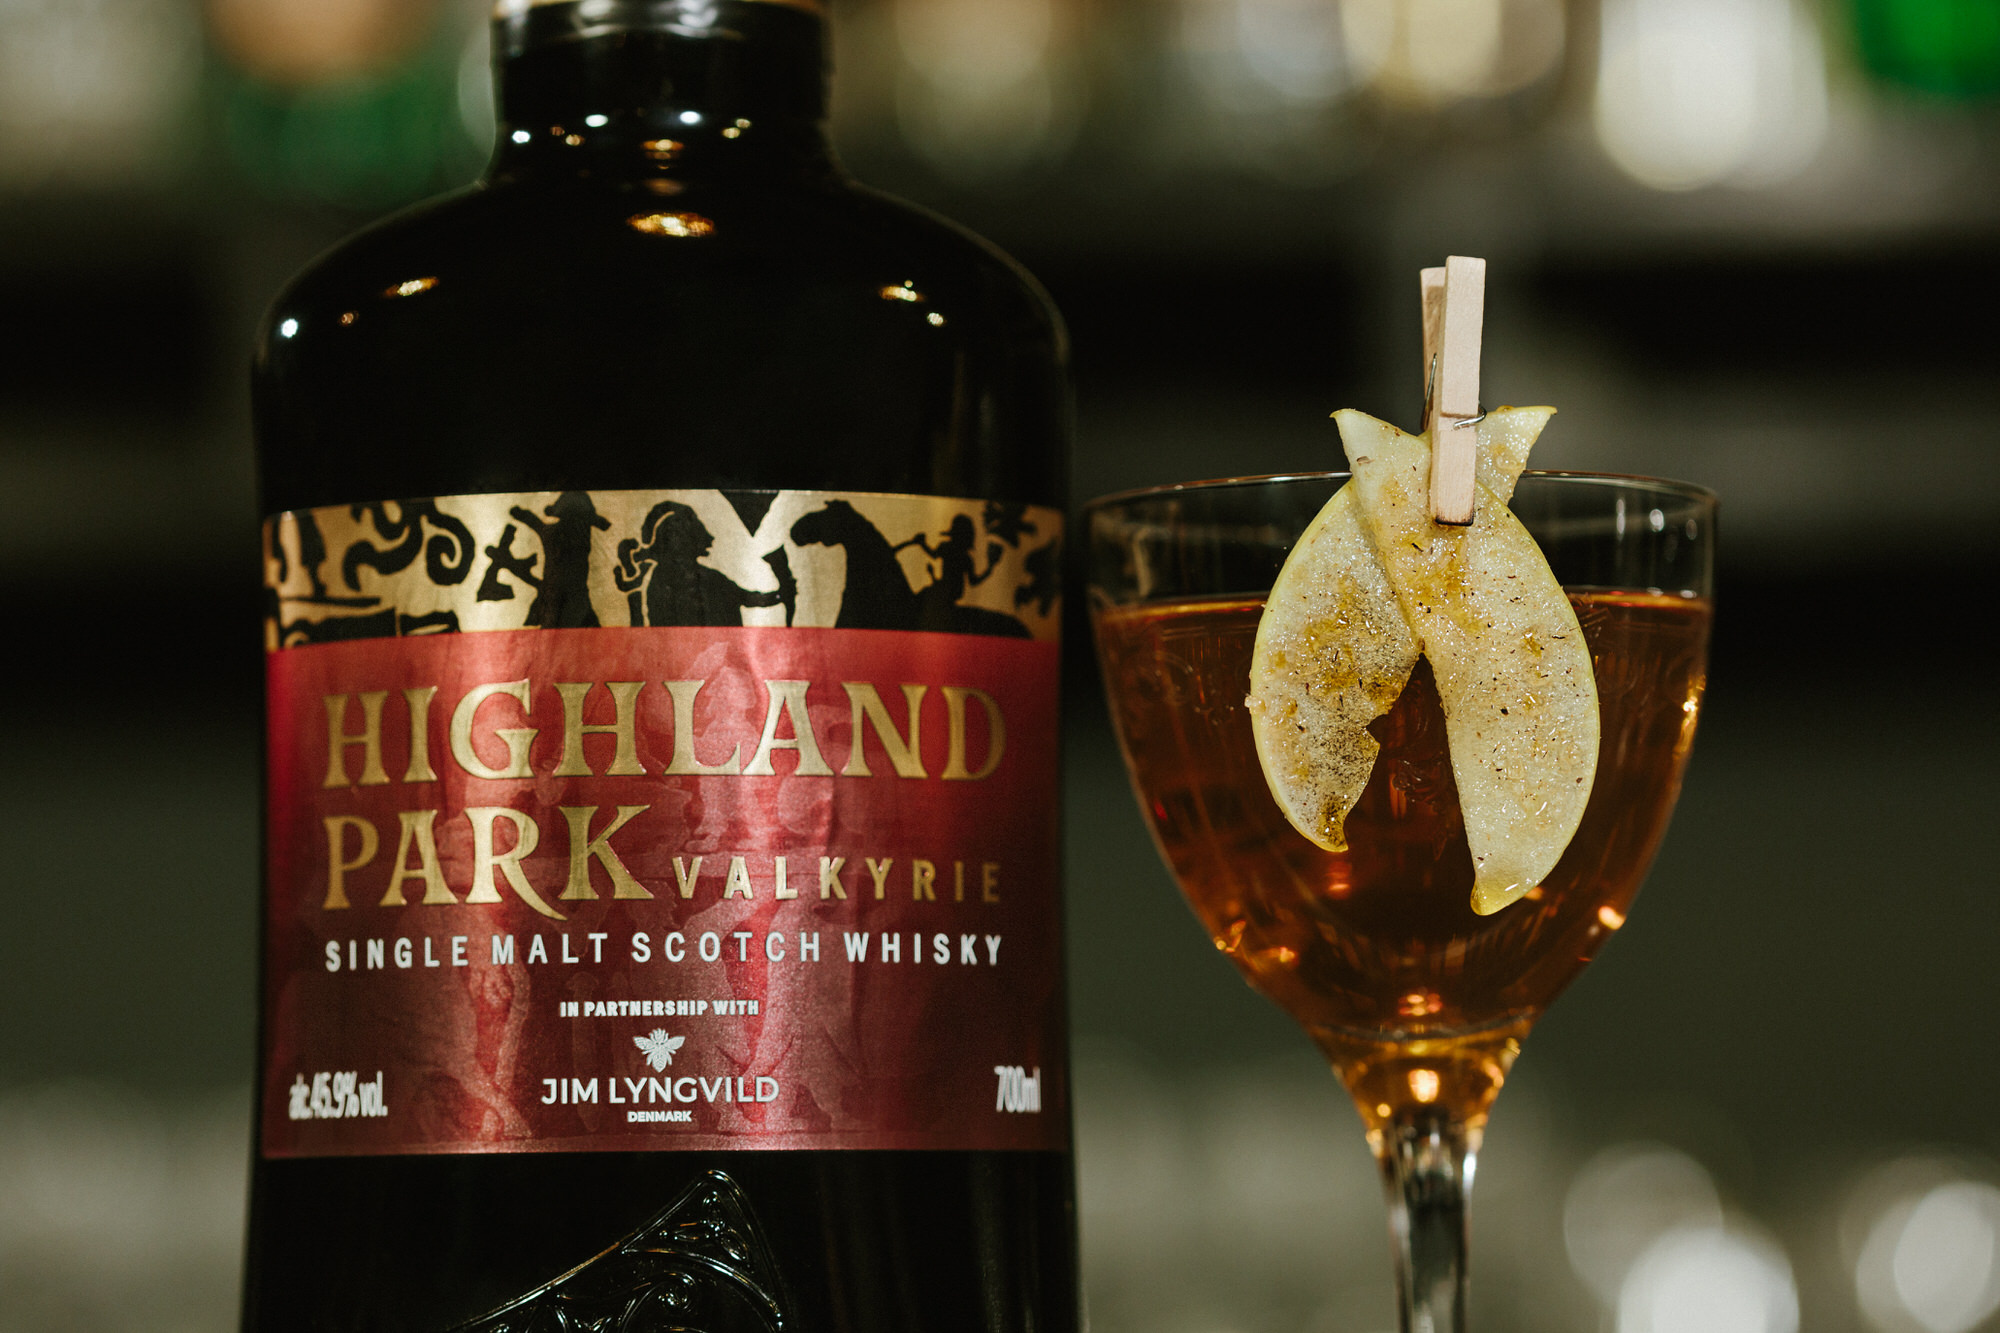 helium-cocktail-bar-highland-park-valkyrie-wings-of-orkney-2.jpg